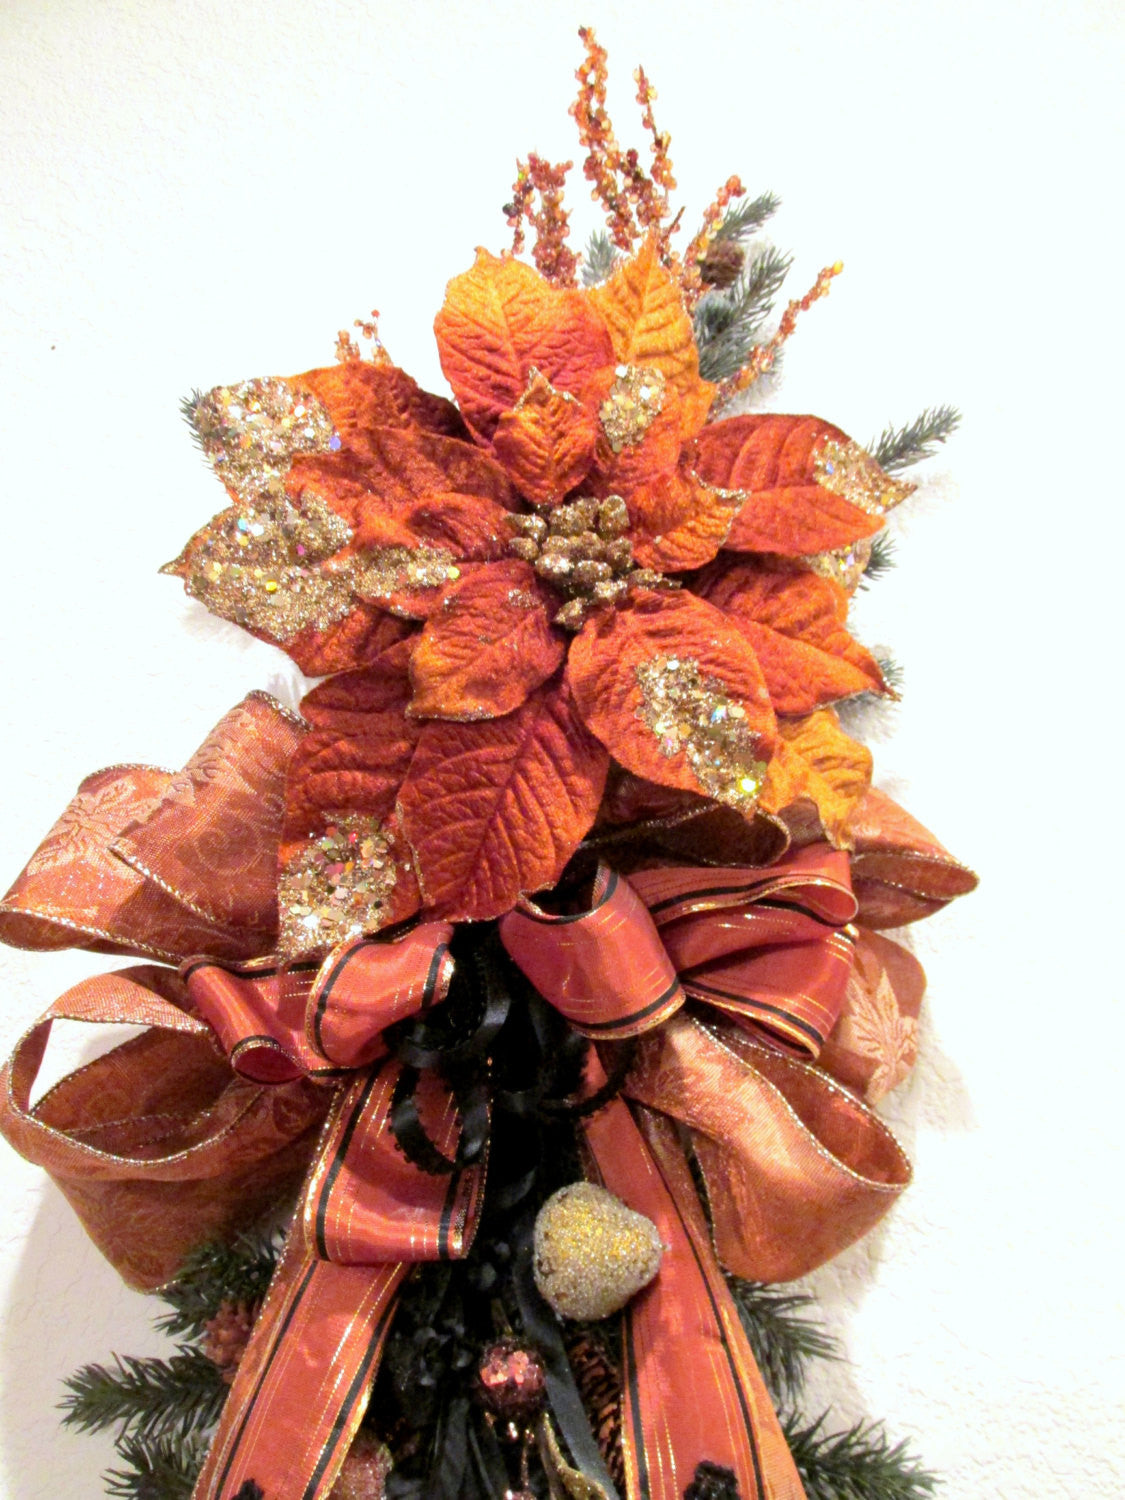 Rust, Gold and Black Victorian Beaded Vertical Door Swag Wreath for Holiday Decor or Home Decor - Odyssey Creations